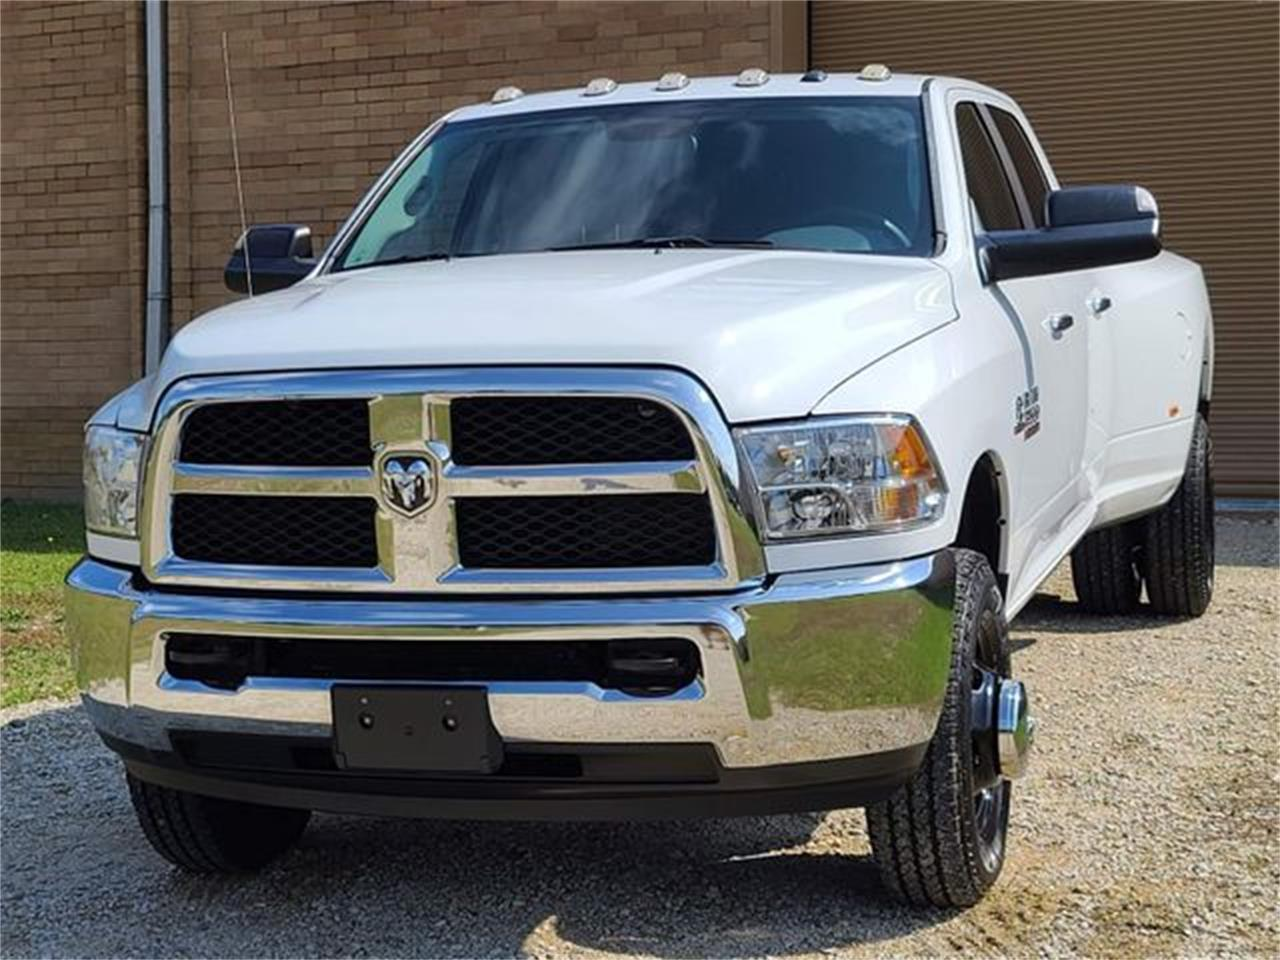 2017 Dodge Ram (CC-1412196) for sale in Hope Mills, North Carolina